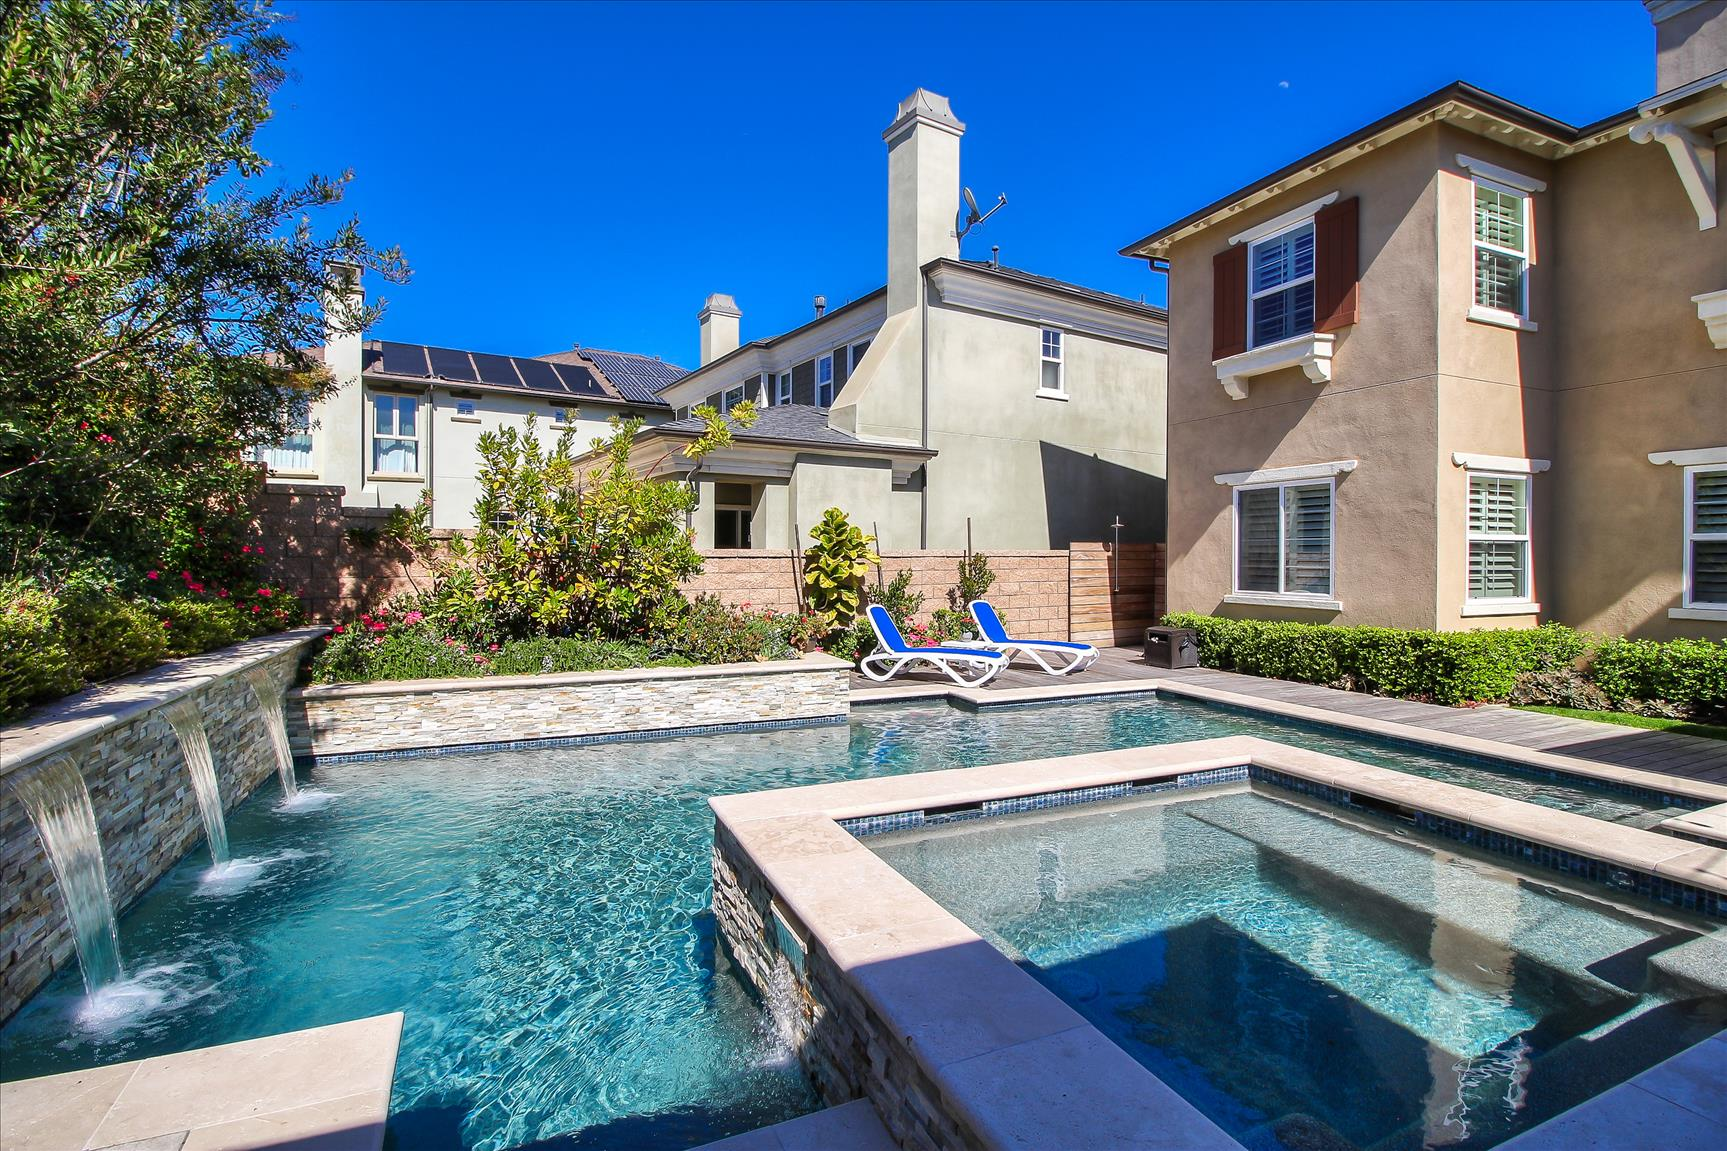 17471 Kennebunk Ln, Huntington Beach, CA  9264978.jpg